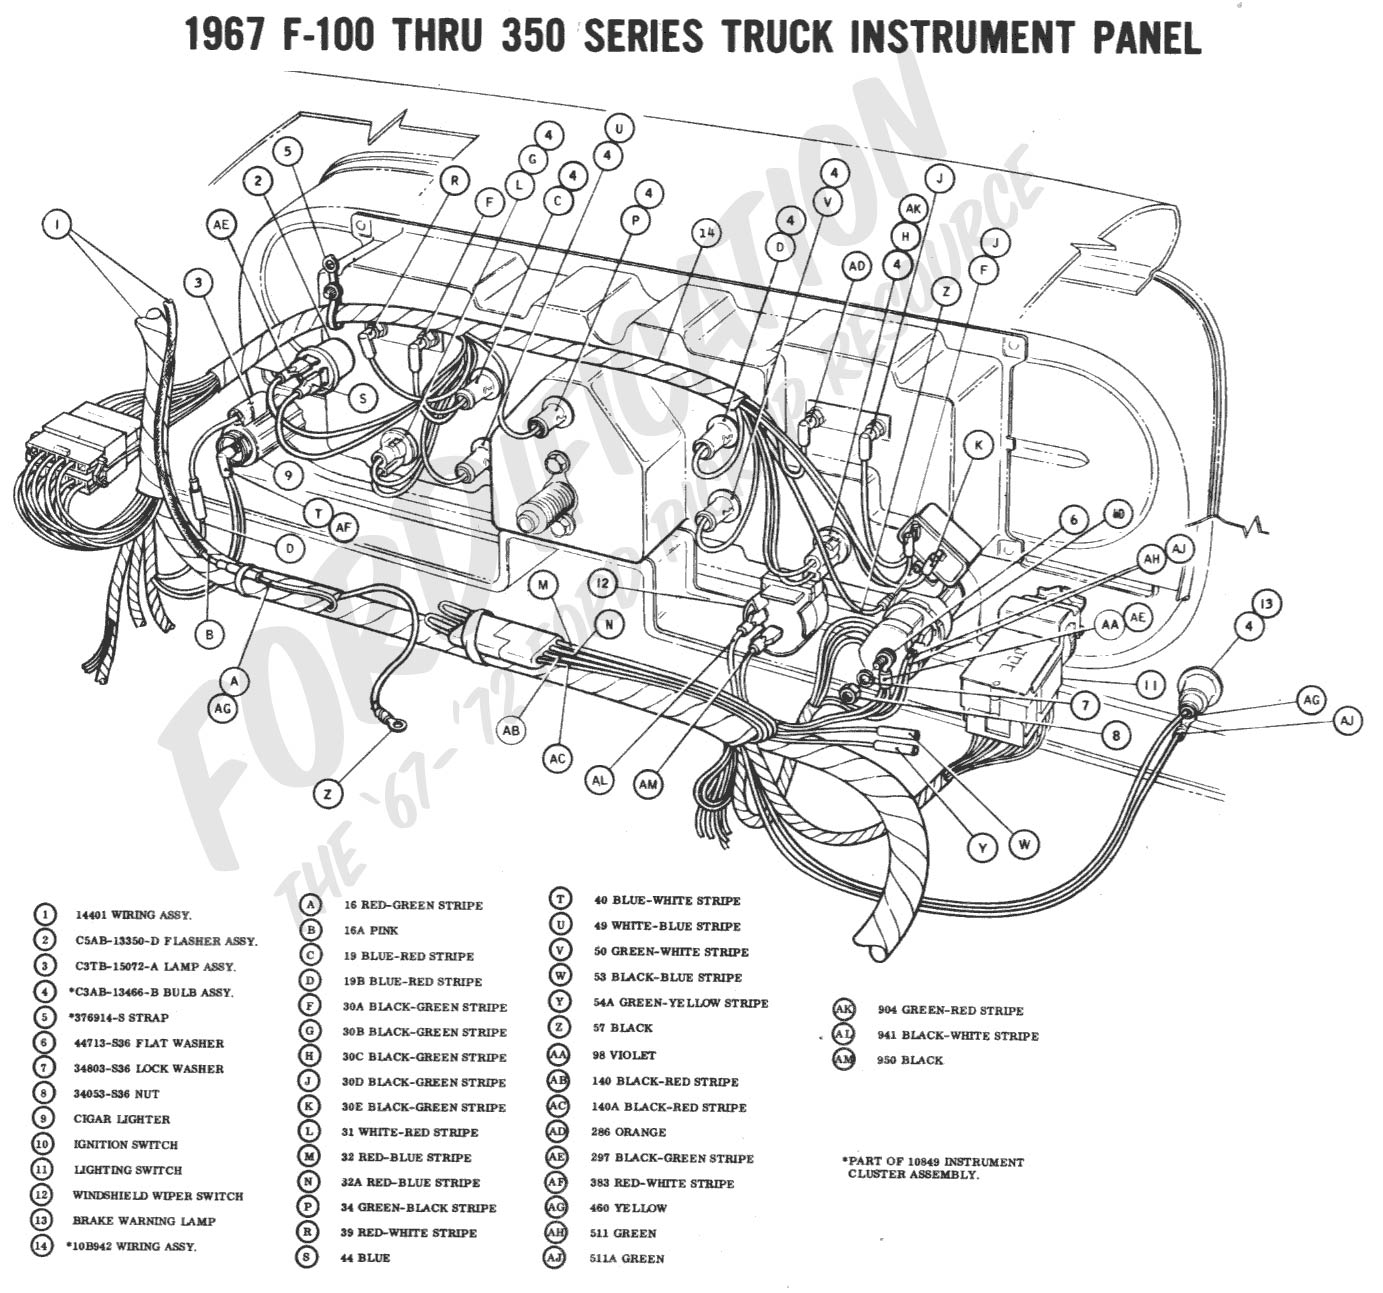 Volvo Alternator Wiring Diagram. Volvo. Wiring Diagrams Instructions